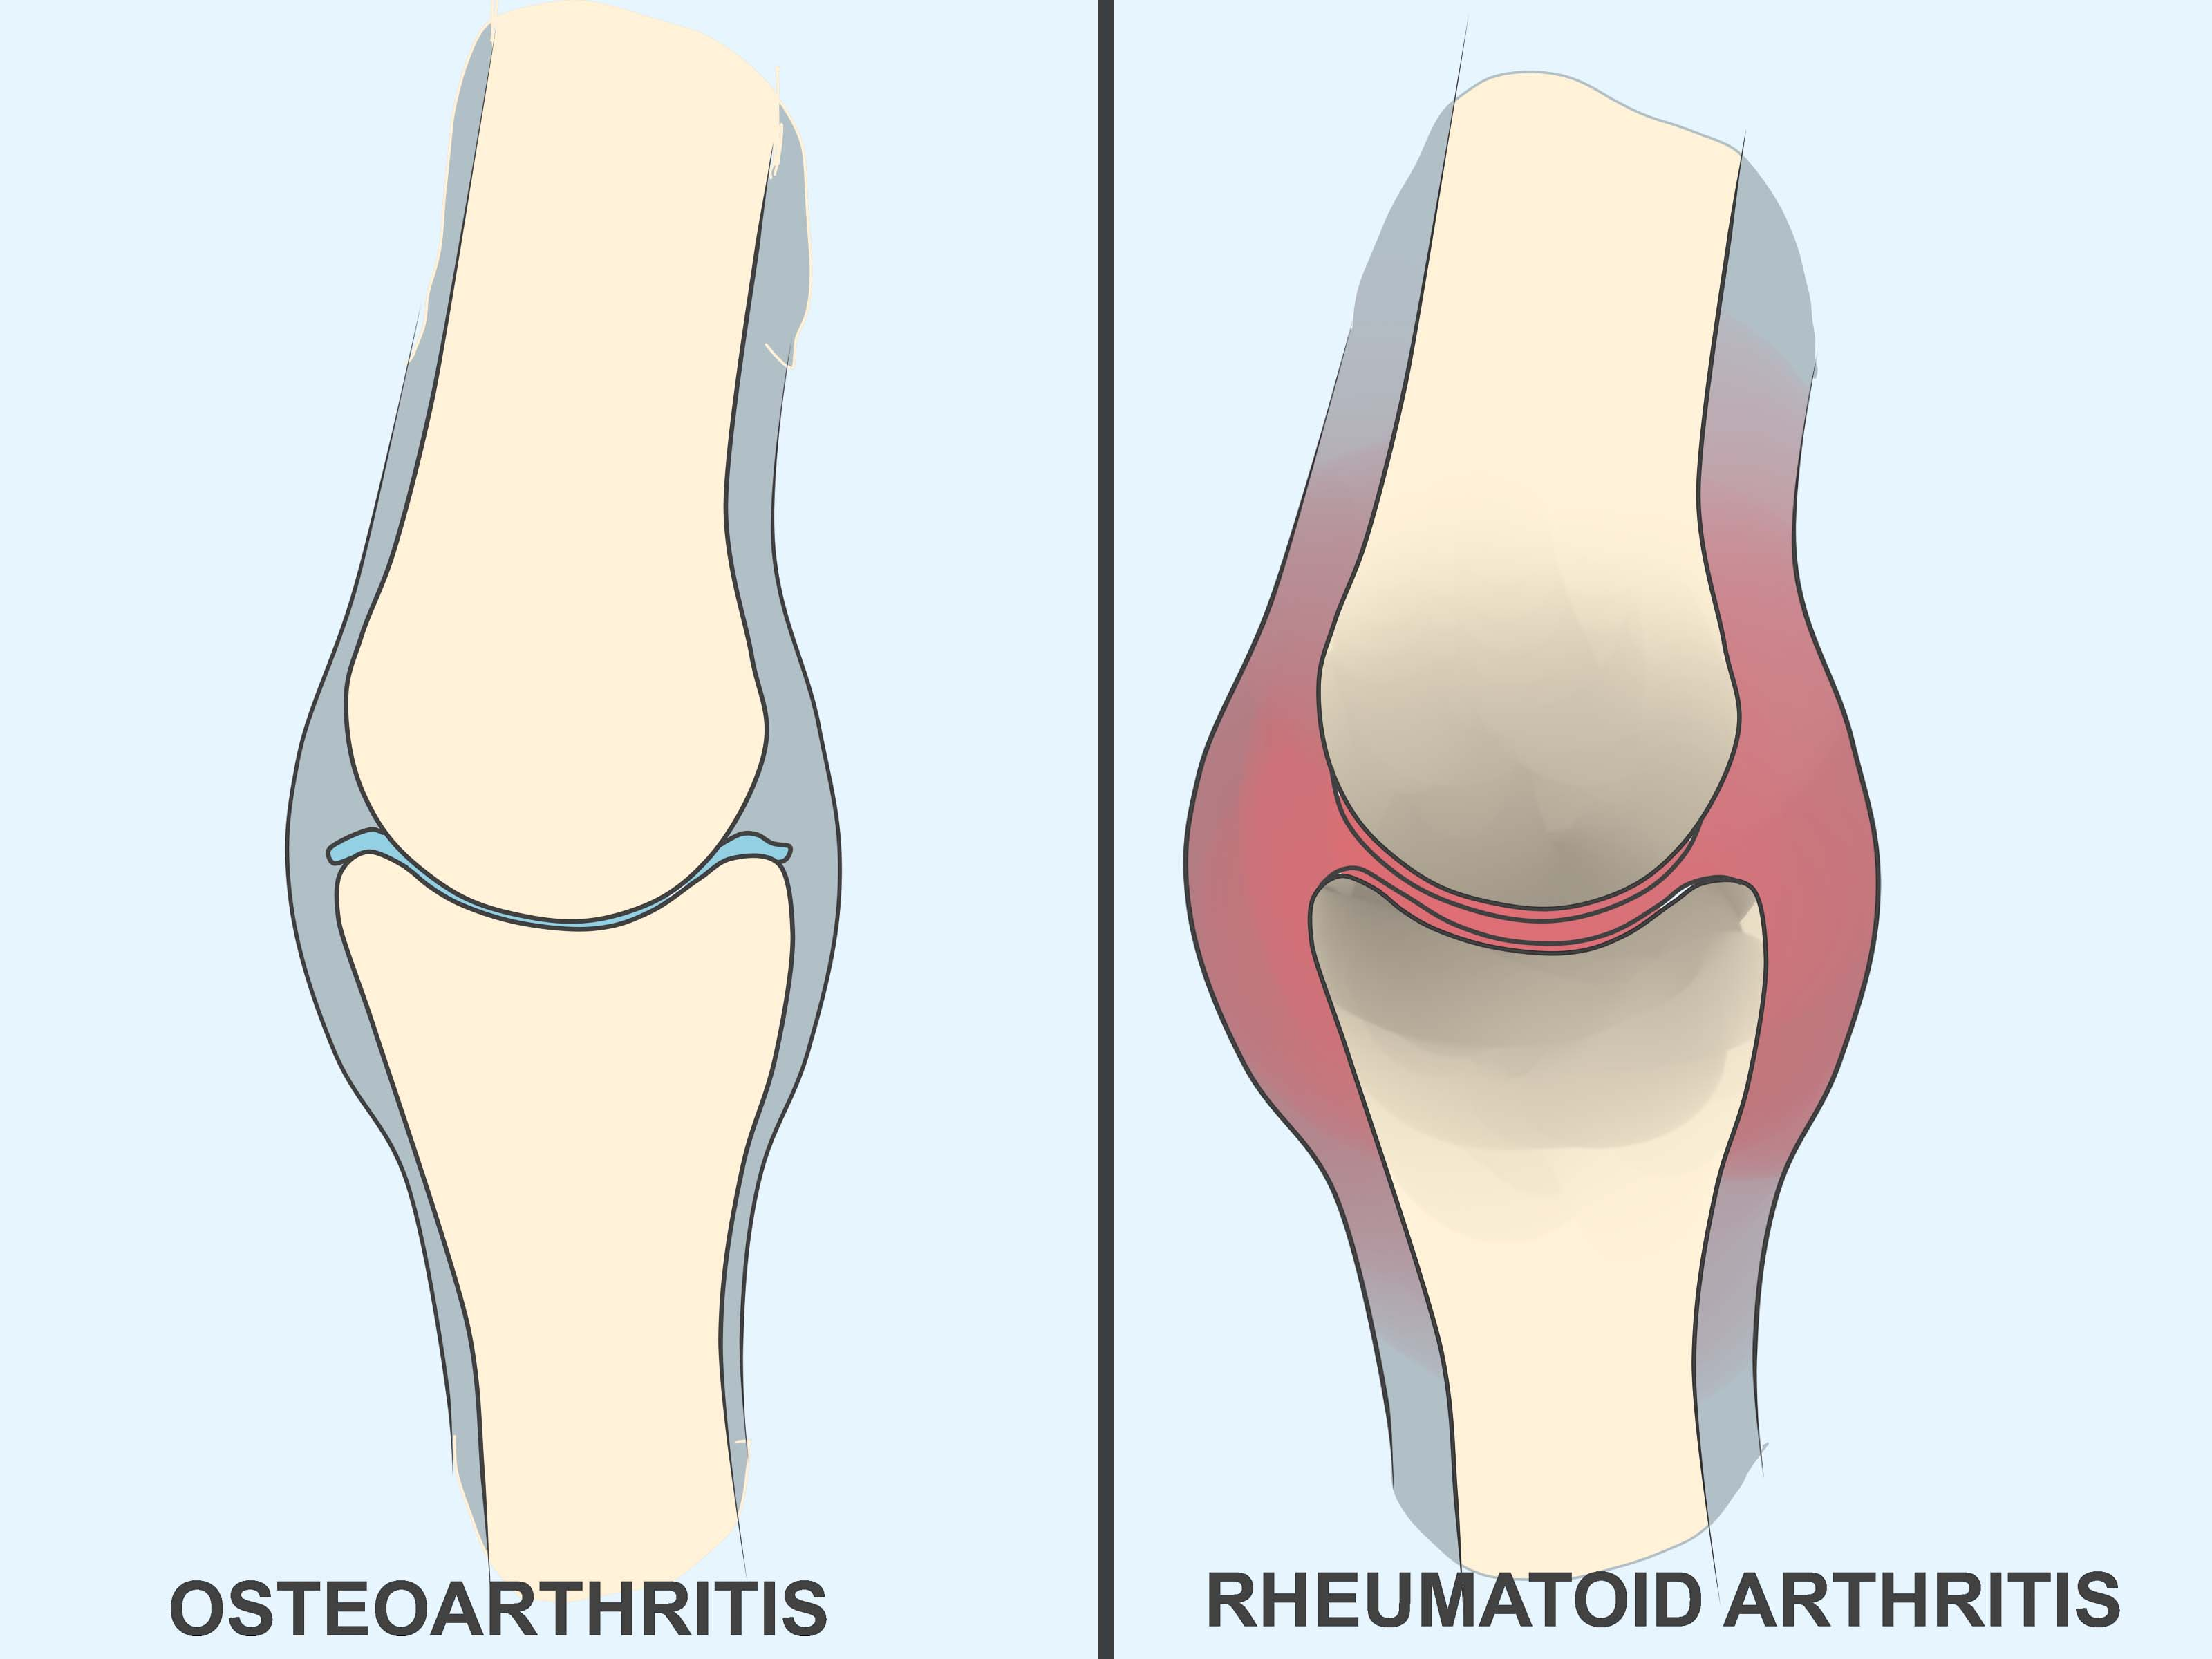 Osteoarthritis and Rheumatoid arthritis Photo